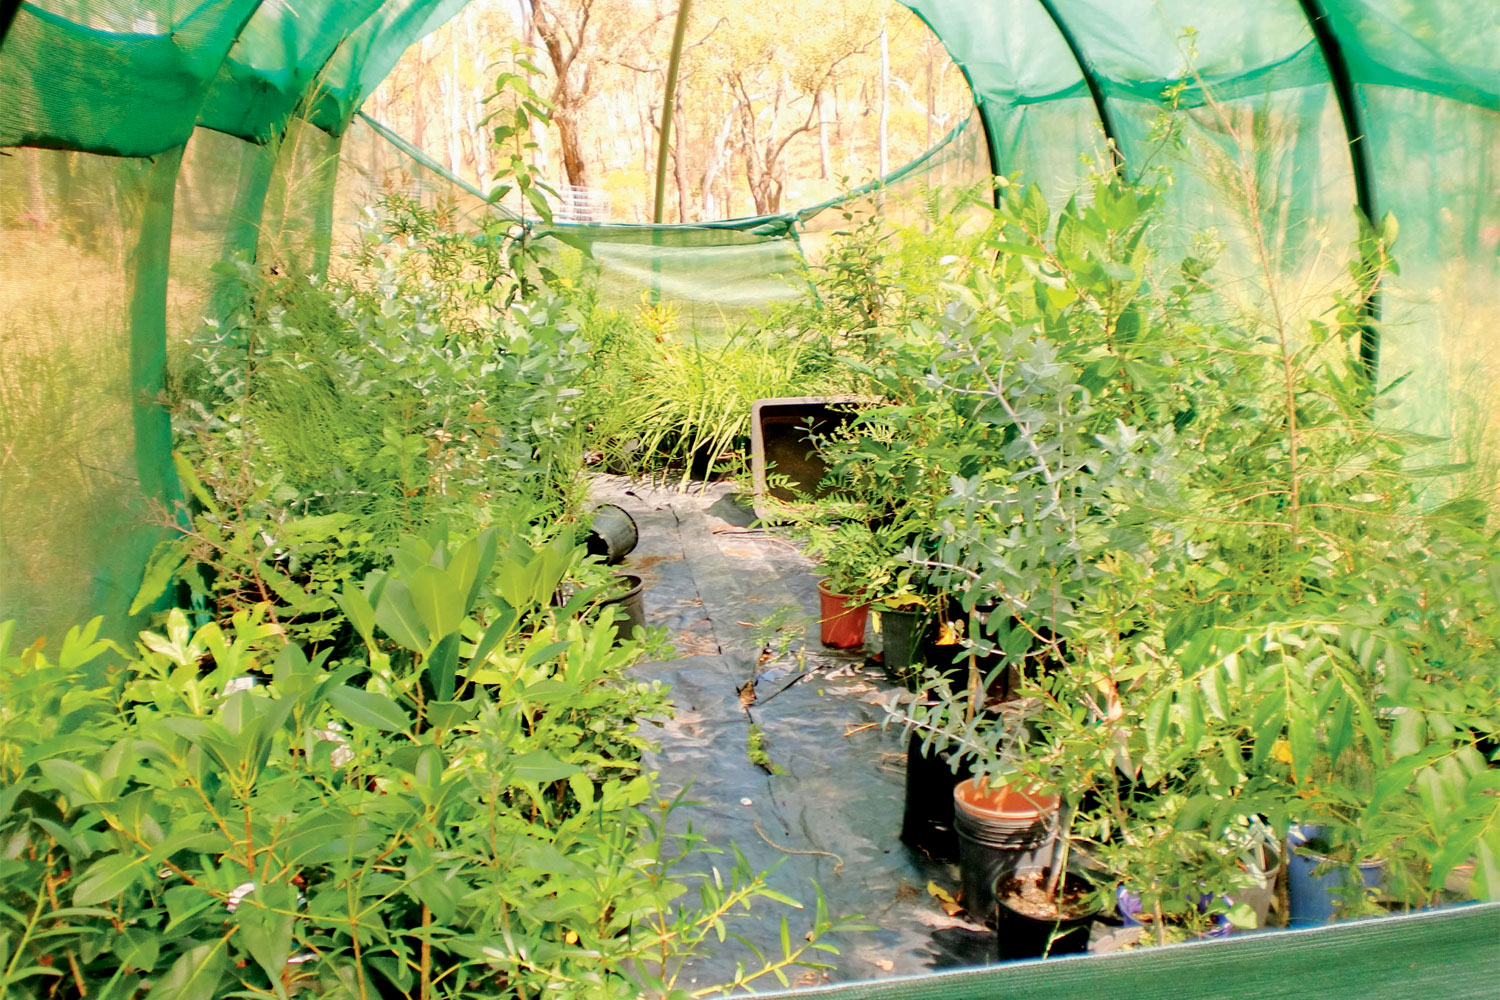 Regrowing the forest: One man's exploration of nature-centric gardening